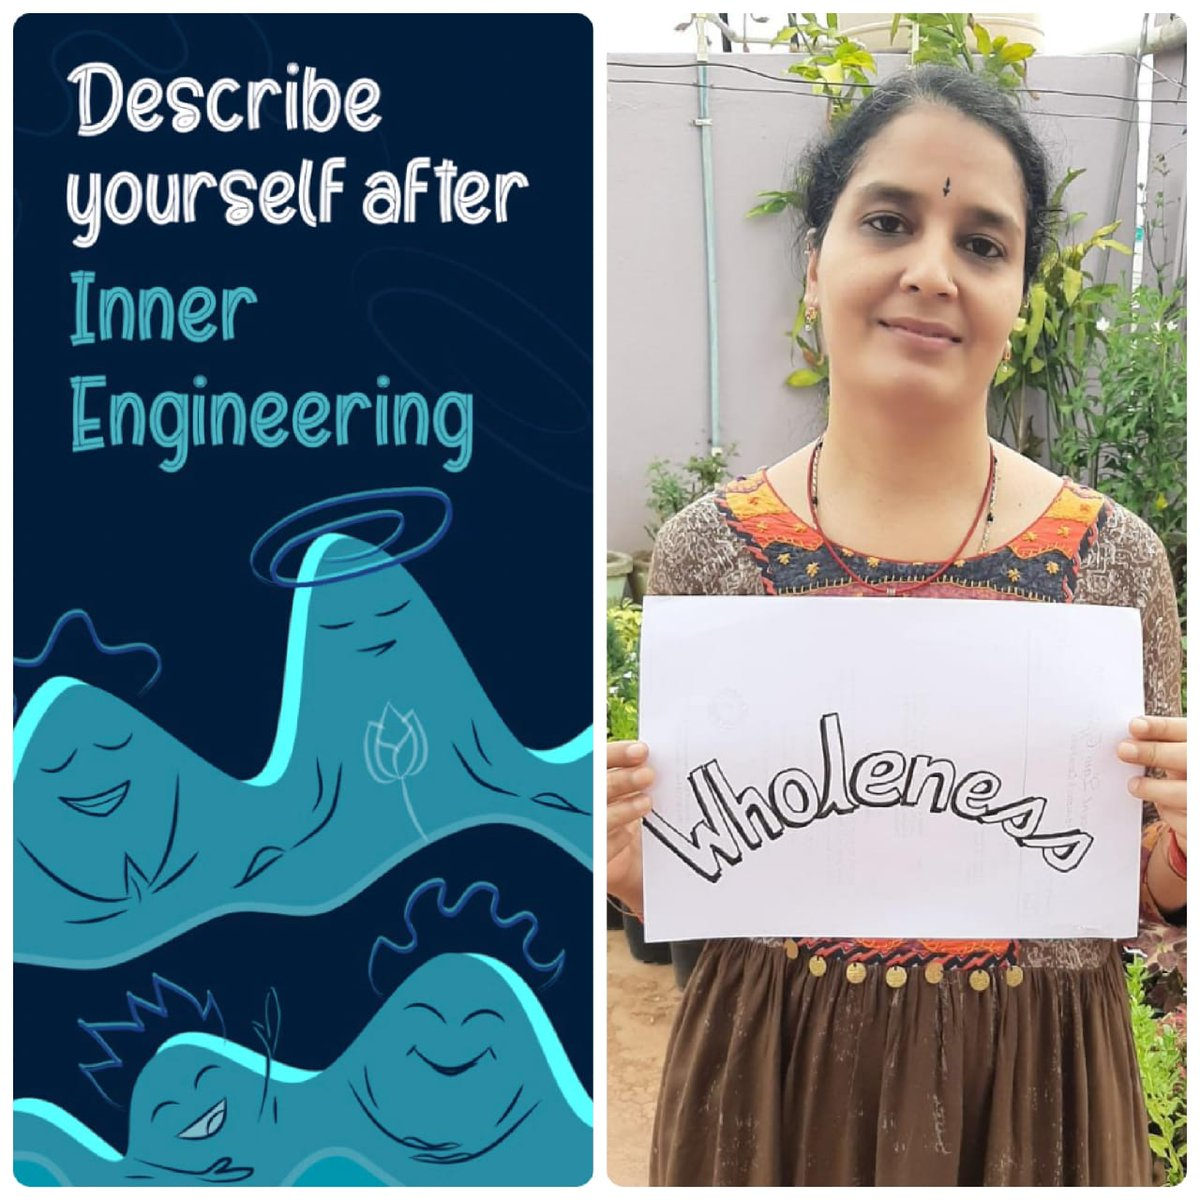 #MyInnerEngineering Inner Engineering has turned into a blessing!!. Has made me wholesome. I have rediscovered myself.  Register for Inner Engineering Online (IEO) which is offered at 50% reduced fee for this month and free for COVID Warriors  http:// isha.co/IEO    <br>http://pic.twitter.com/IP8gBtPwrZ